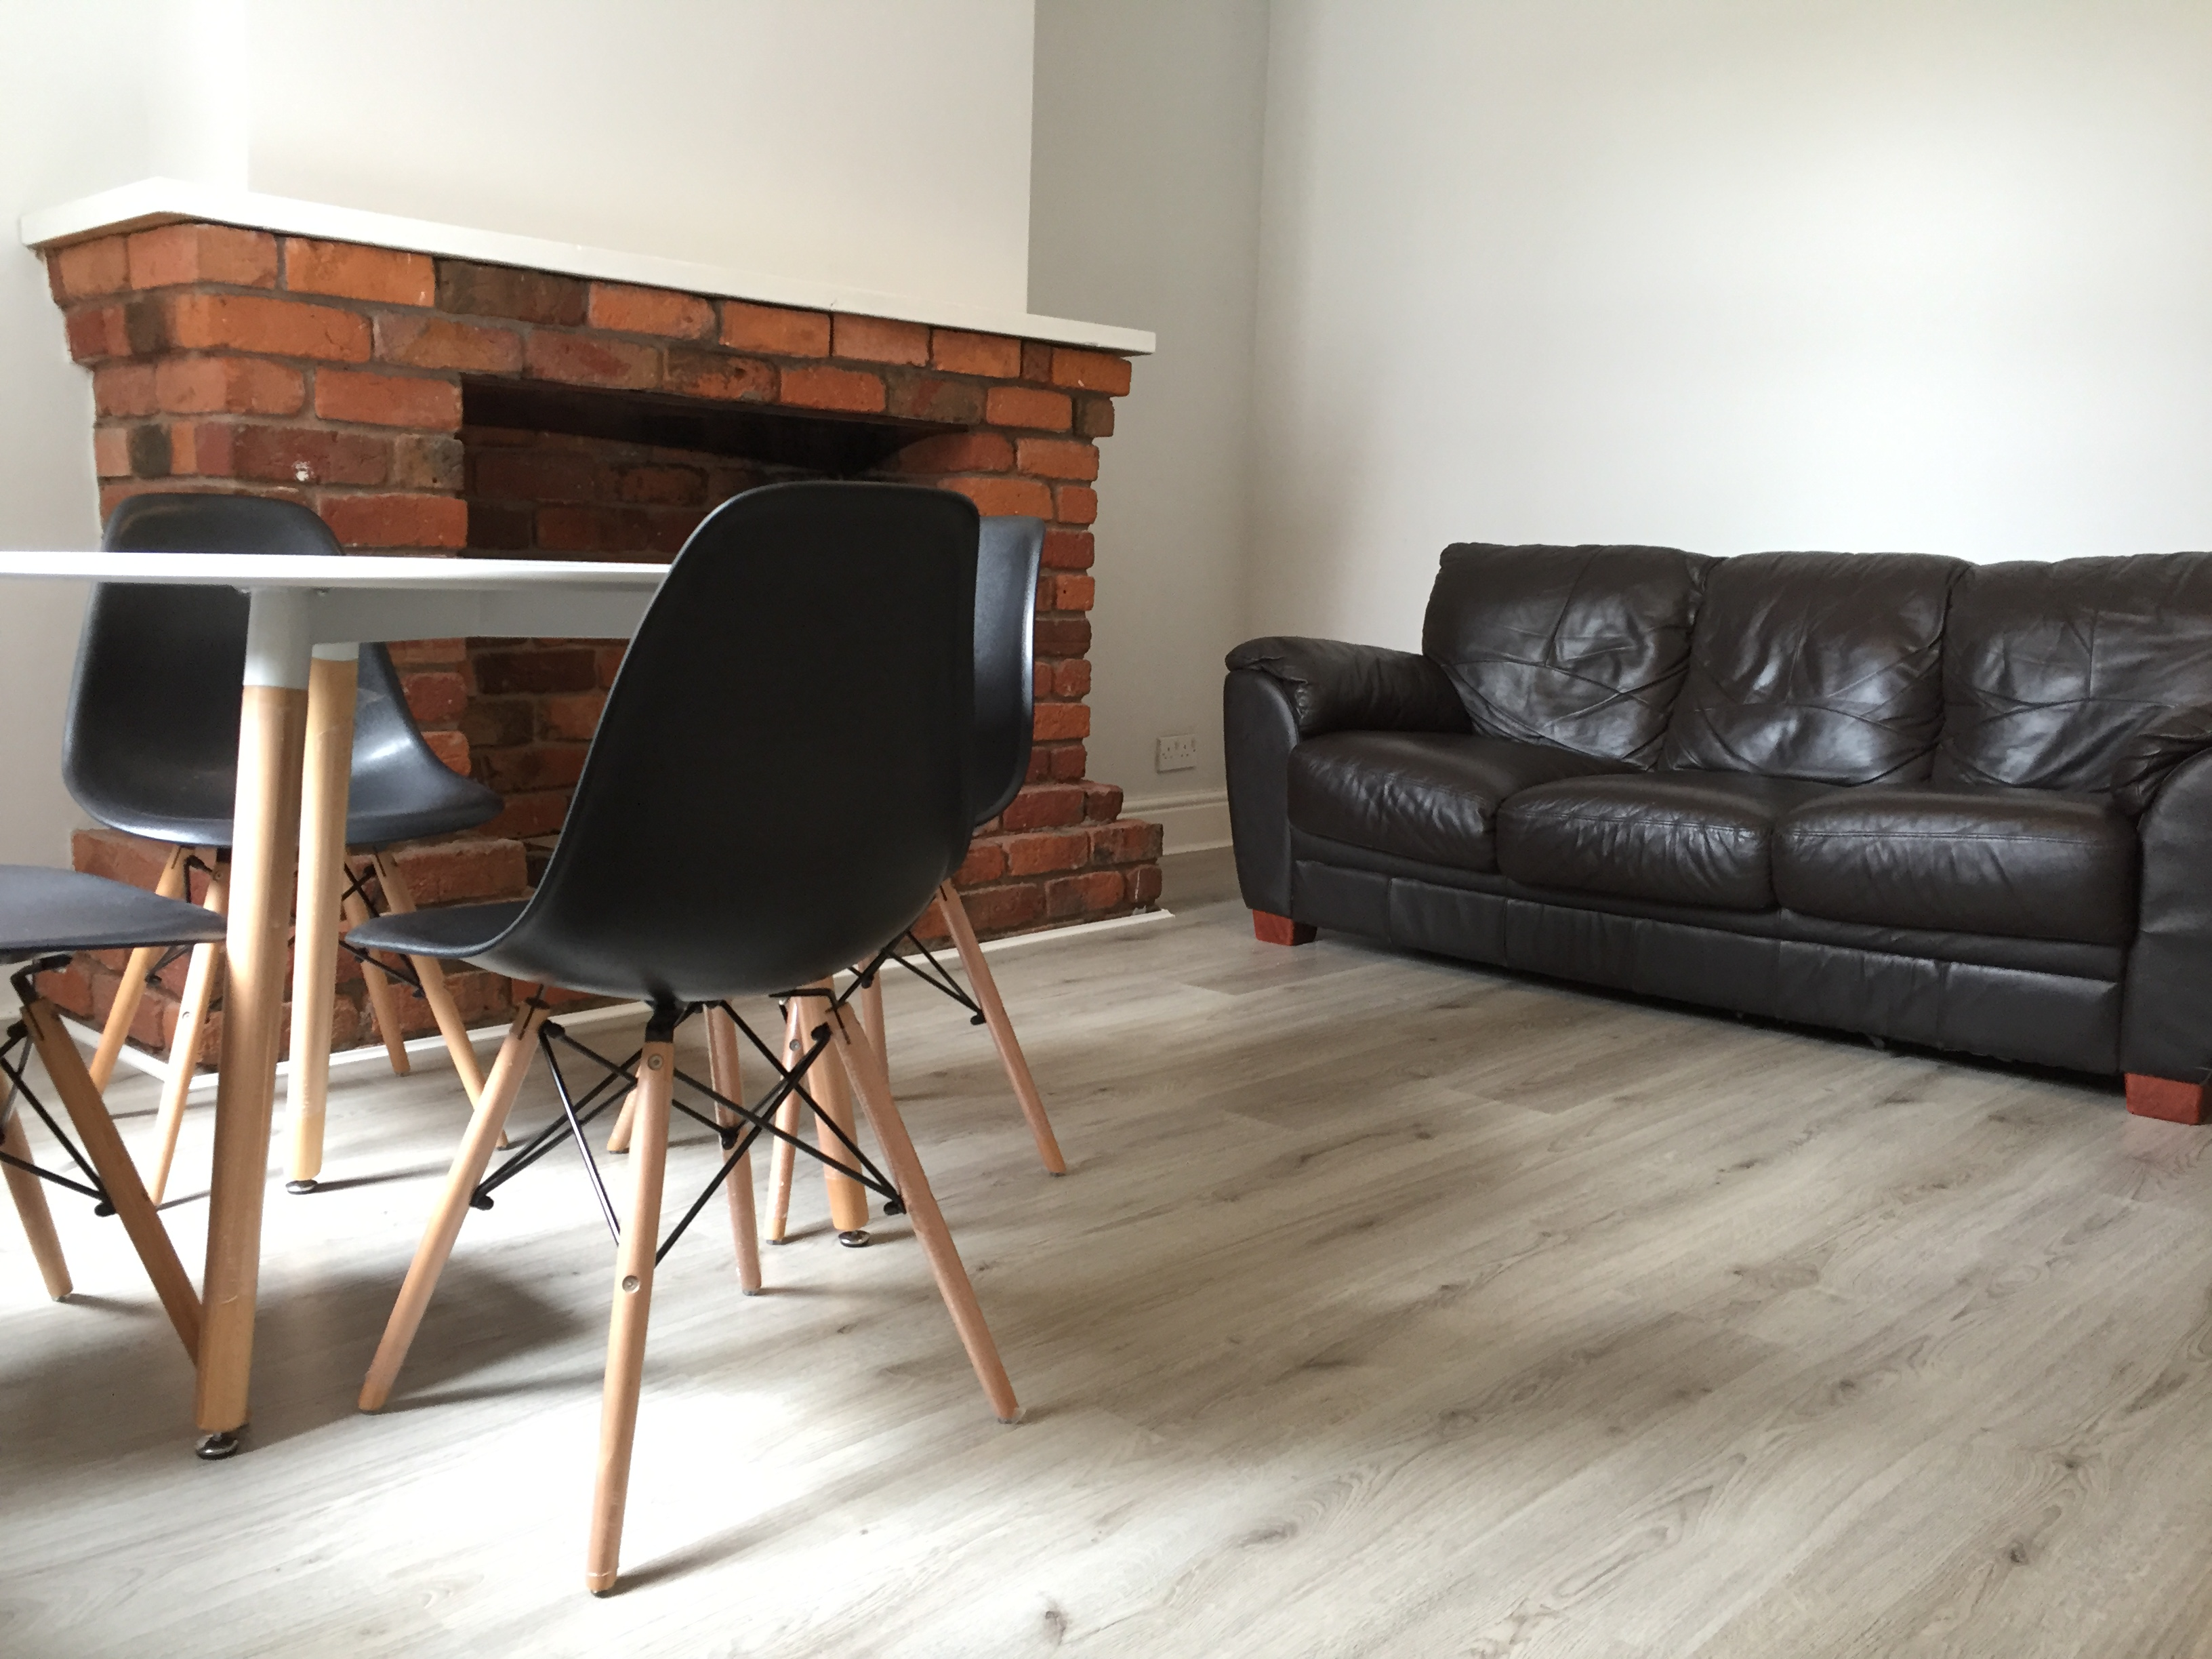 En-suite Rooms to Rent at Edleston Road